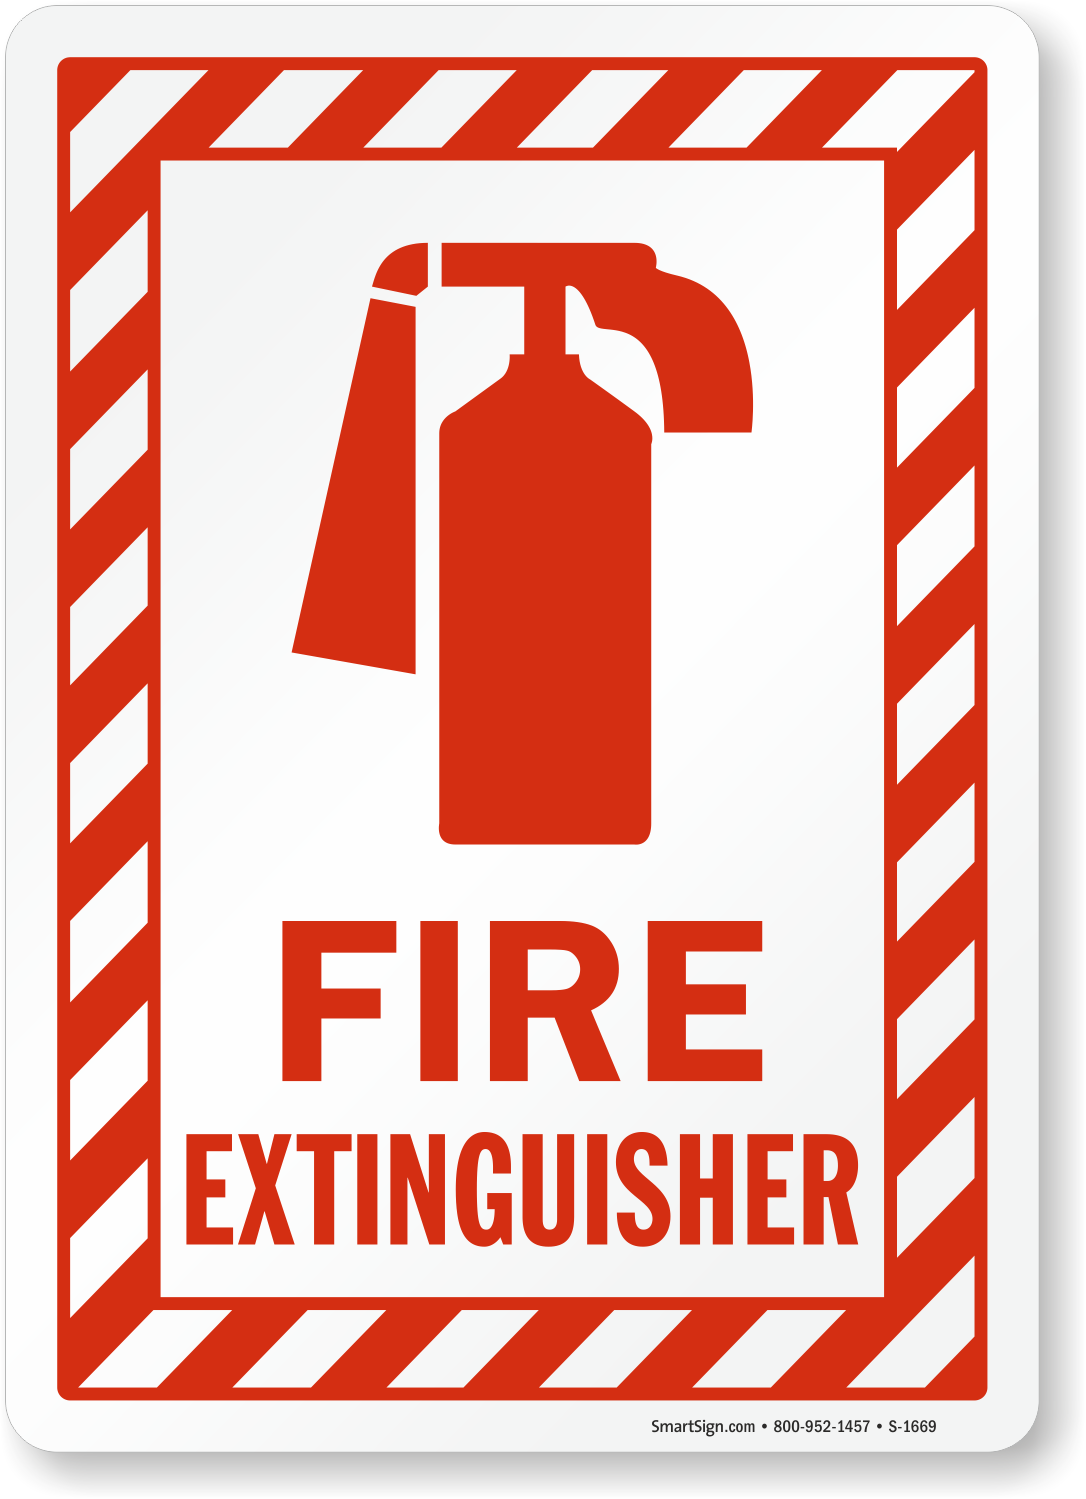 Fire Extinguisher Signs Fire Extinguisher Safety Signs